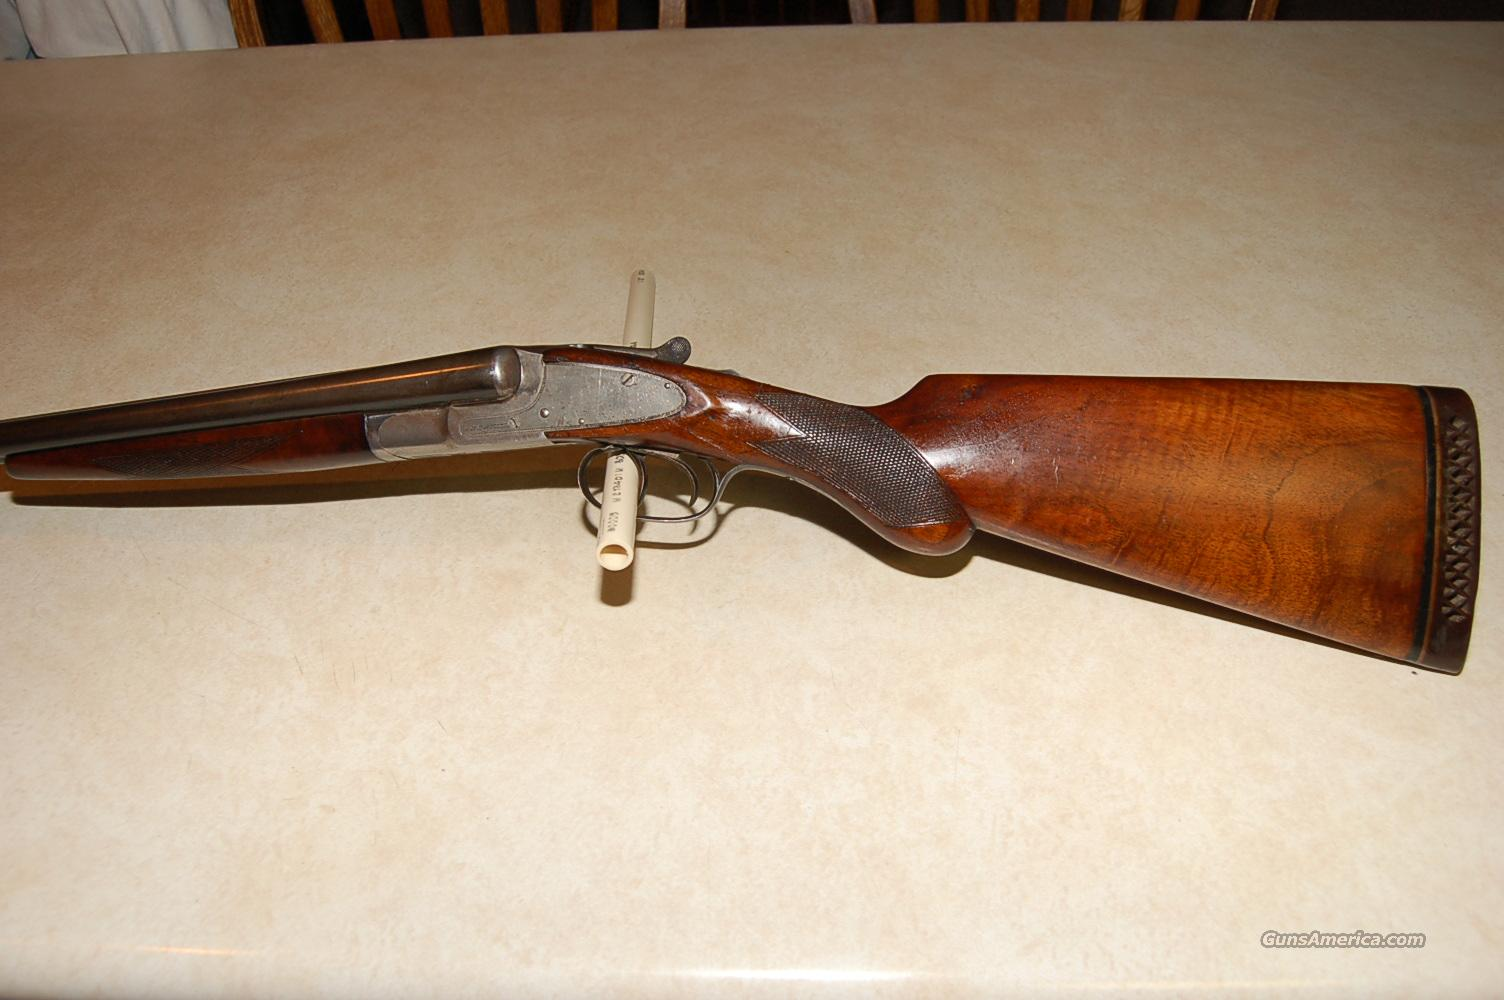 LC Smith 20ga Pigeon Grade  Guns > Shotguns > L.C. Smith Shotguns